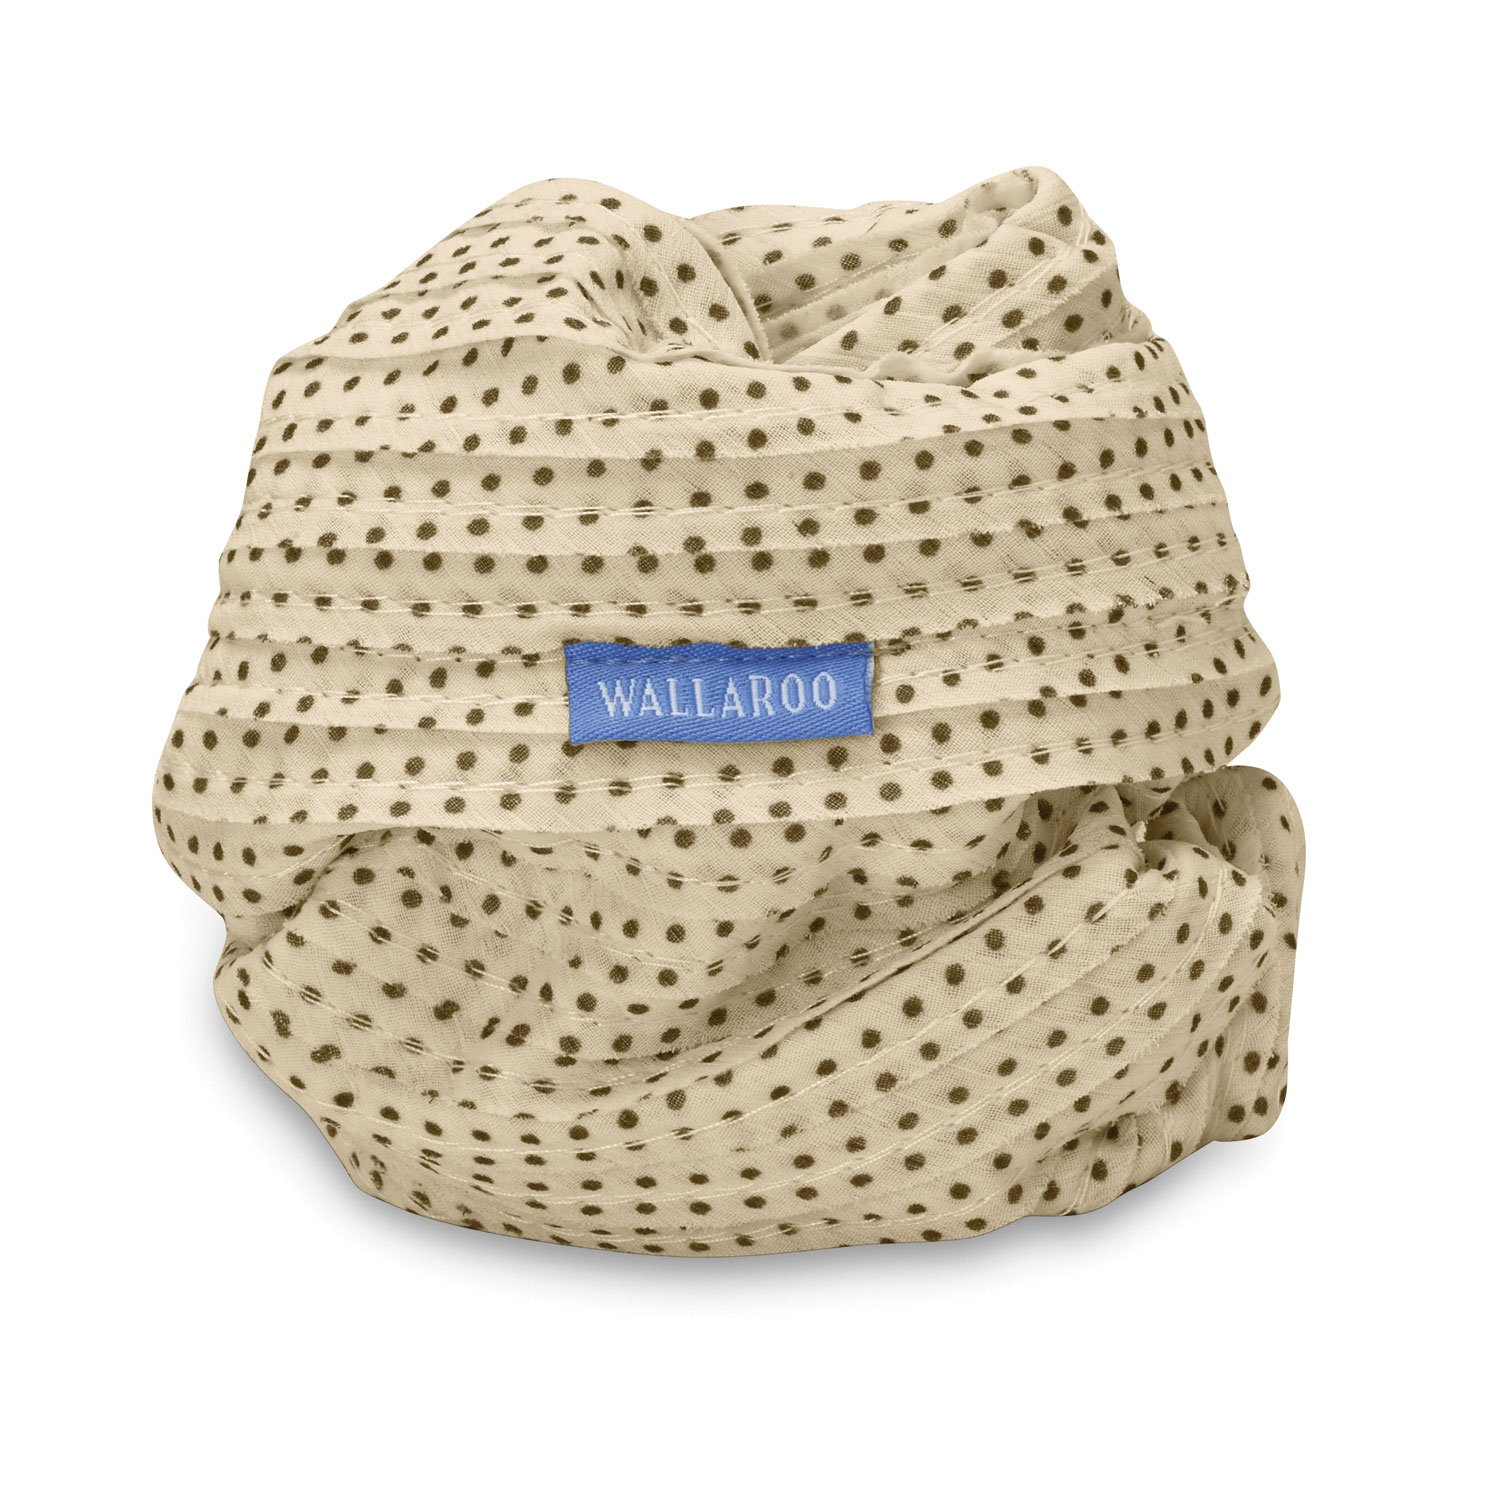 Wallaroo Hat Company Women's Scrunchie Sun Hat – Natural/Brown Dots – UPF 50+, Ultra-Lightweight, Packable for Every Day, Designed in Australia.